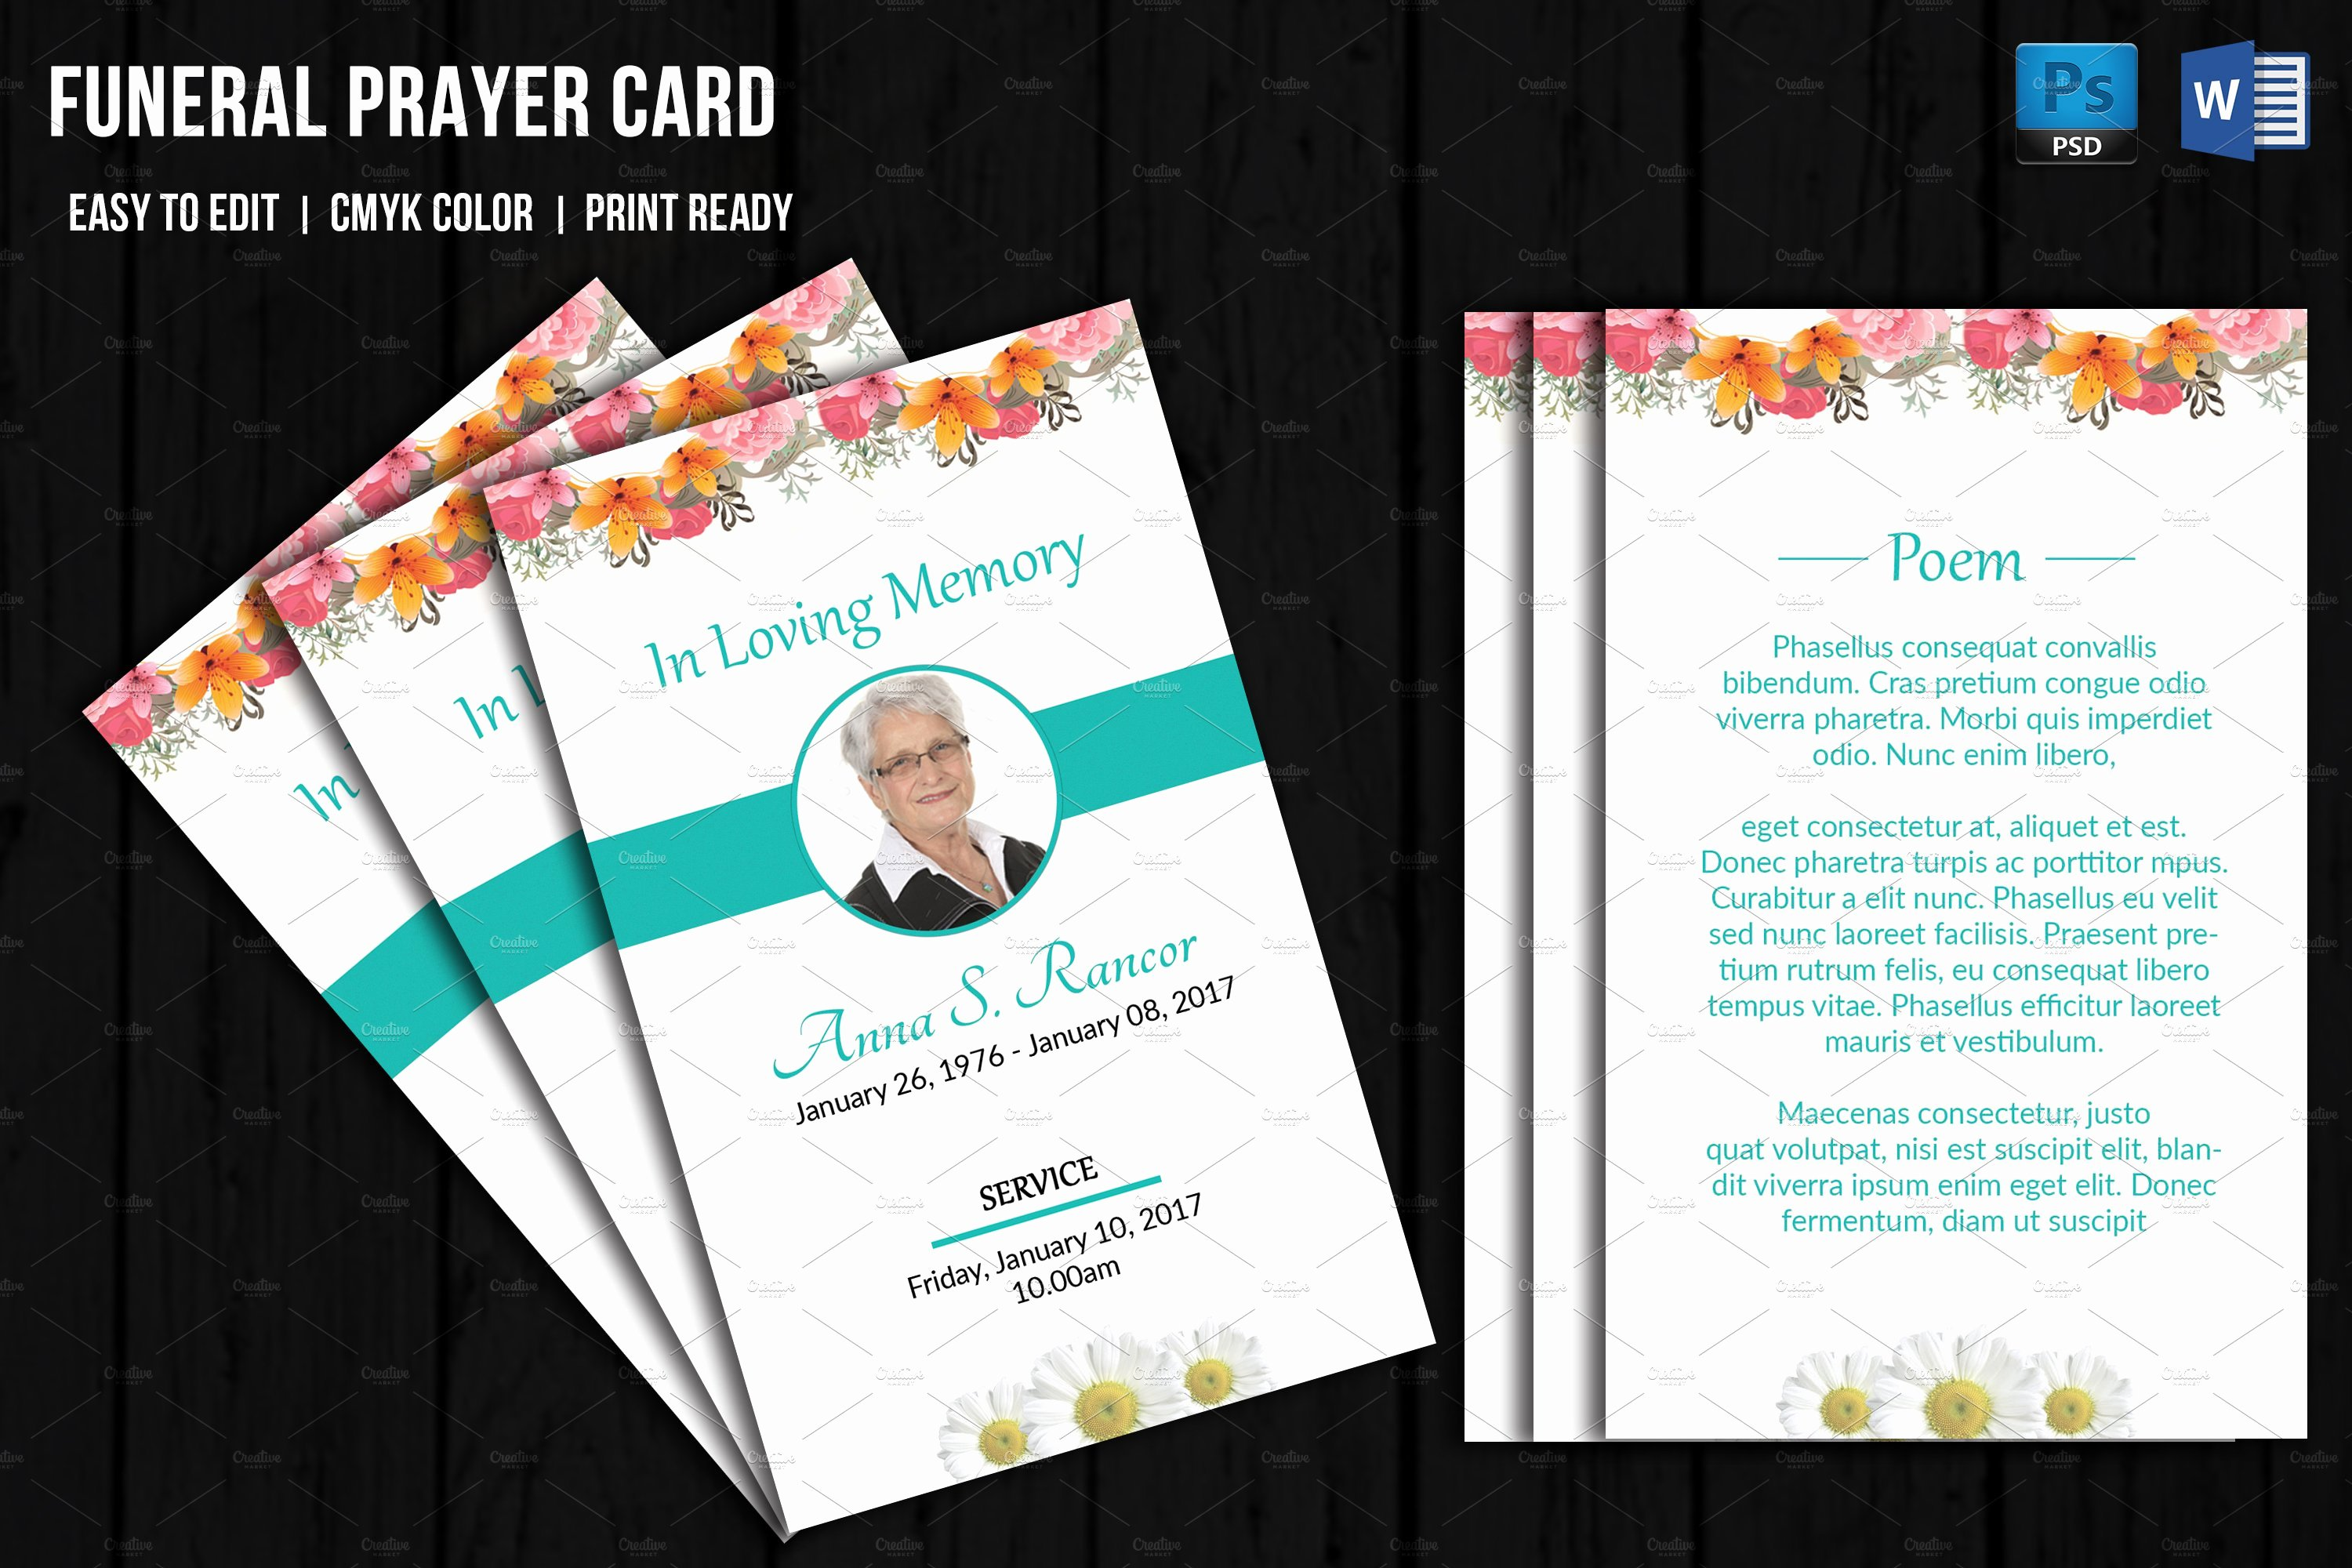 Prayer Card Template Free Awesome Funeral Prayer Card Template V656 Card Templates